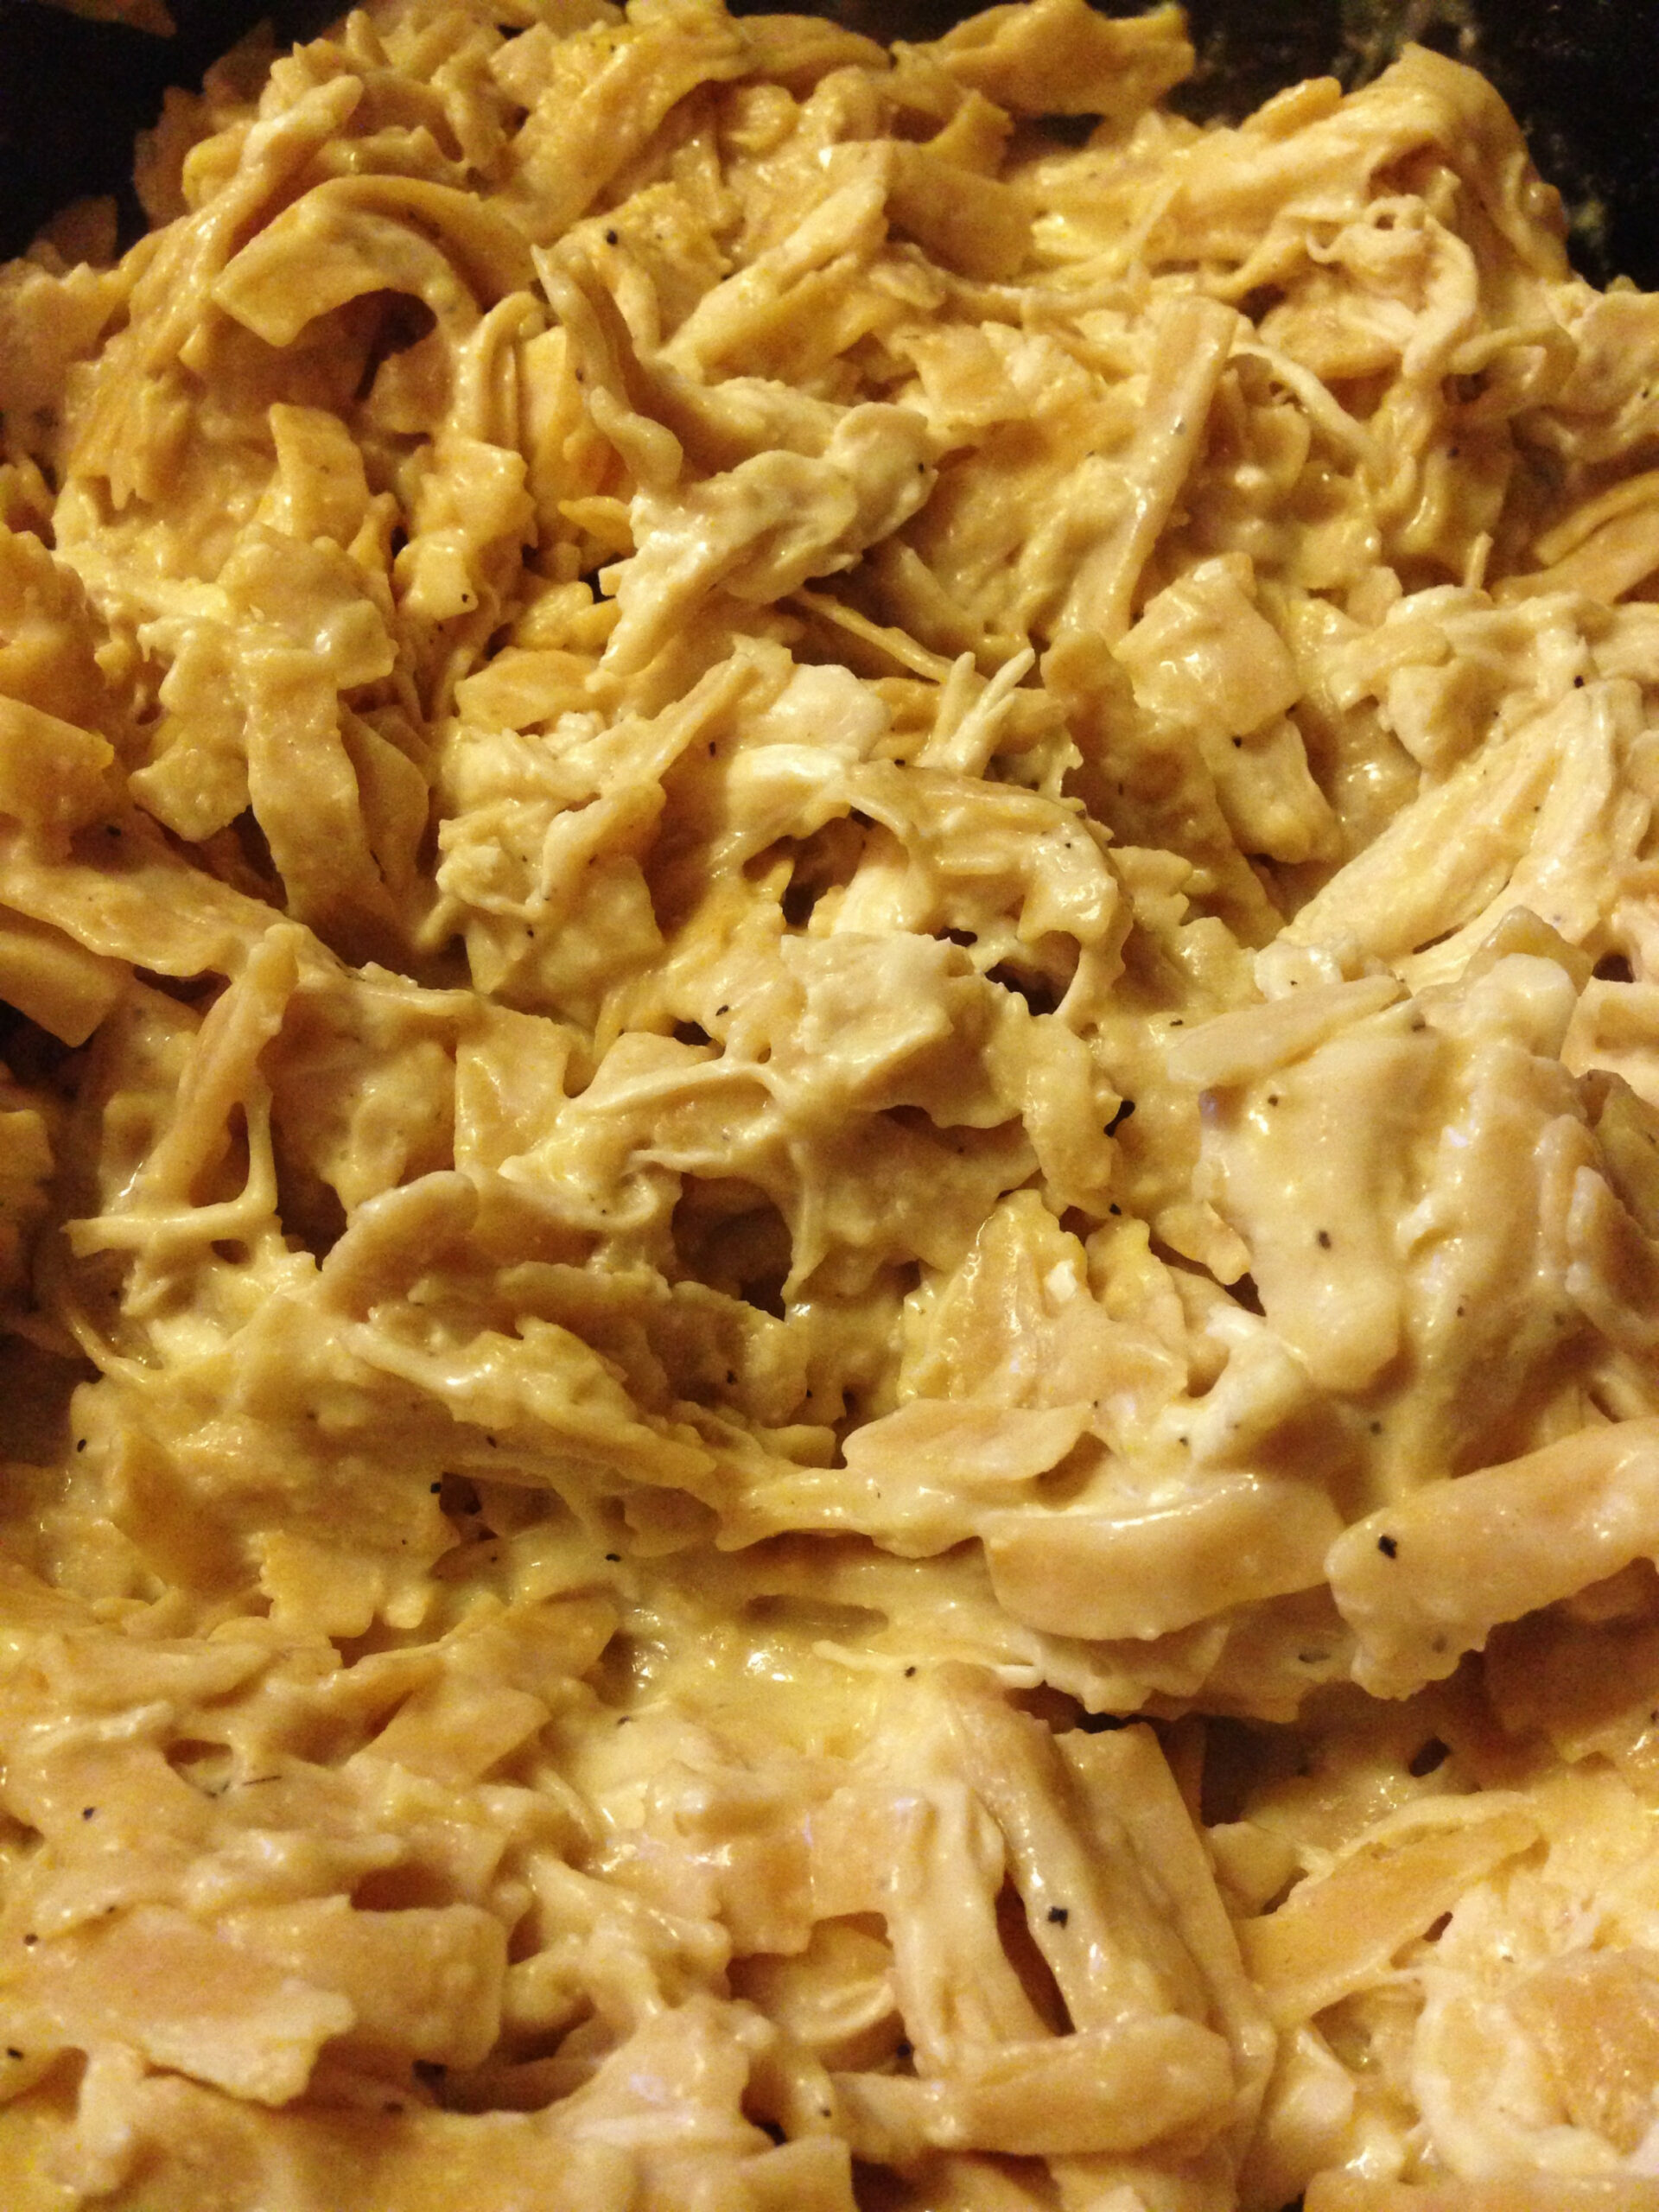 Slow Cooker Chicken & Noodles | Changing a Life - weight watchers recipes chicken breast